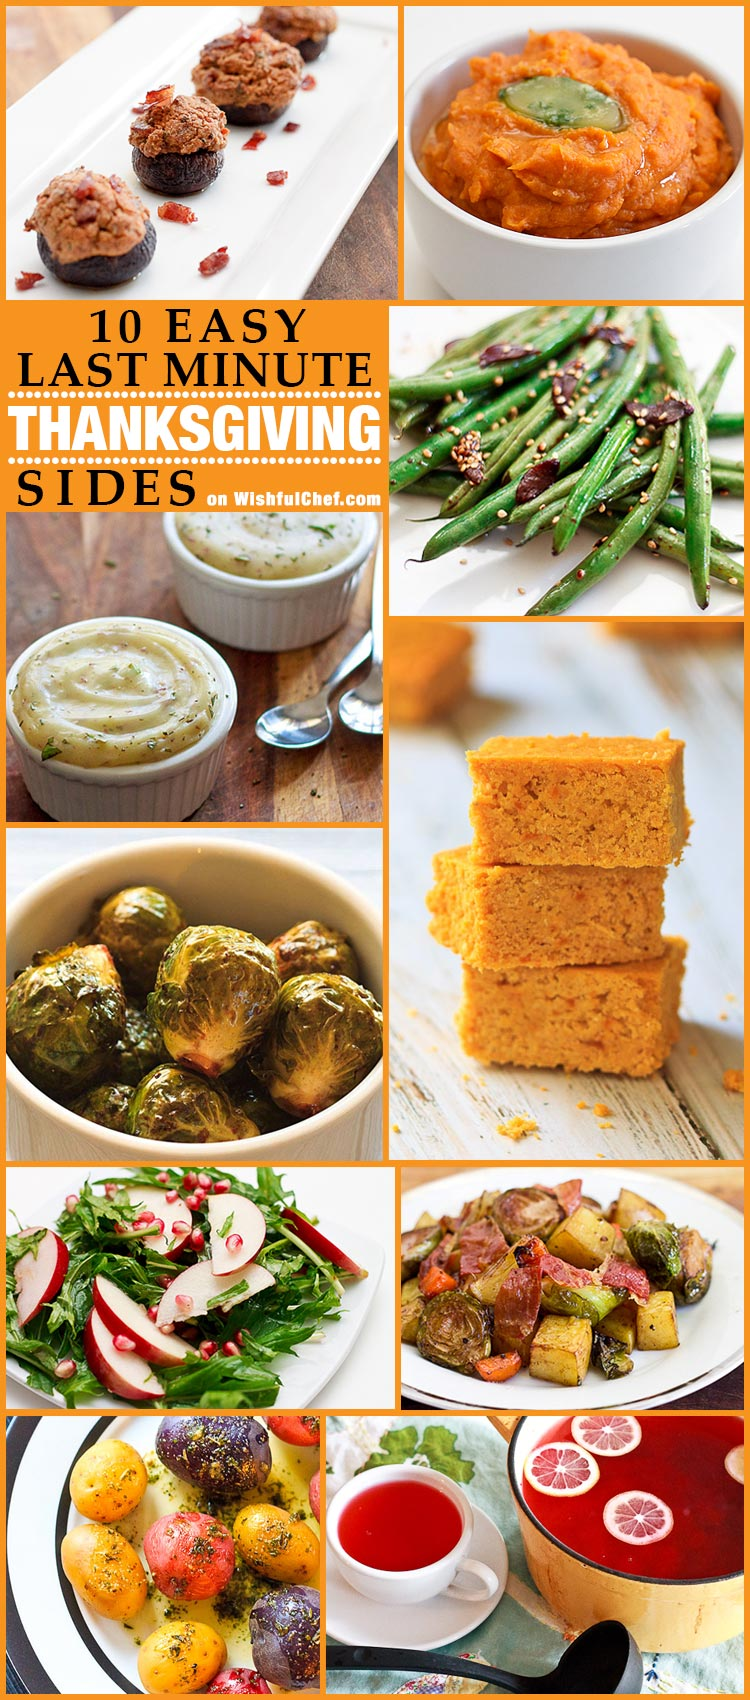 10 Easy Last Minute Thanksgiving Sides